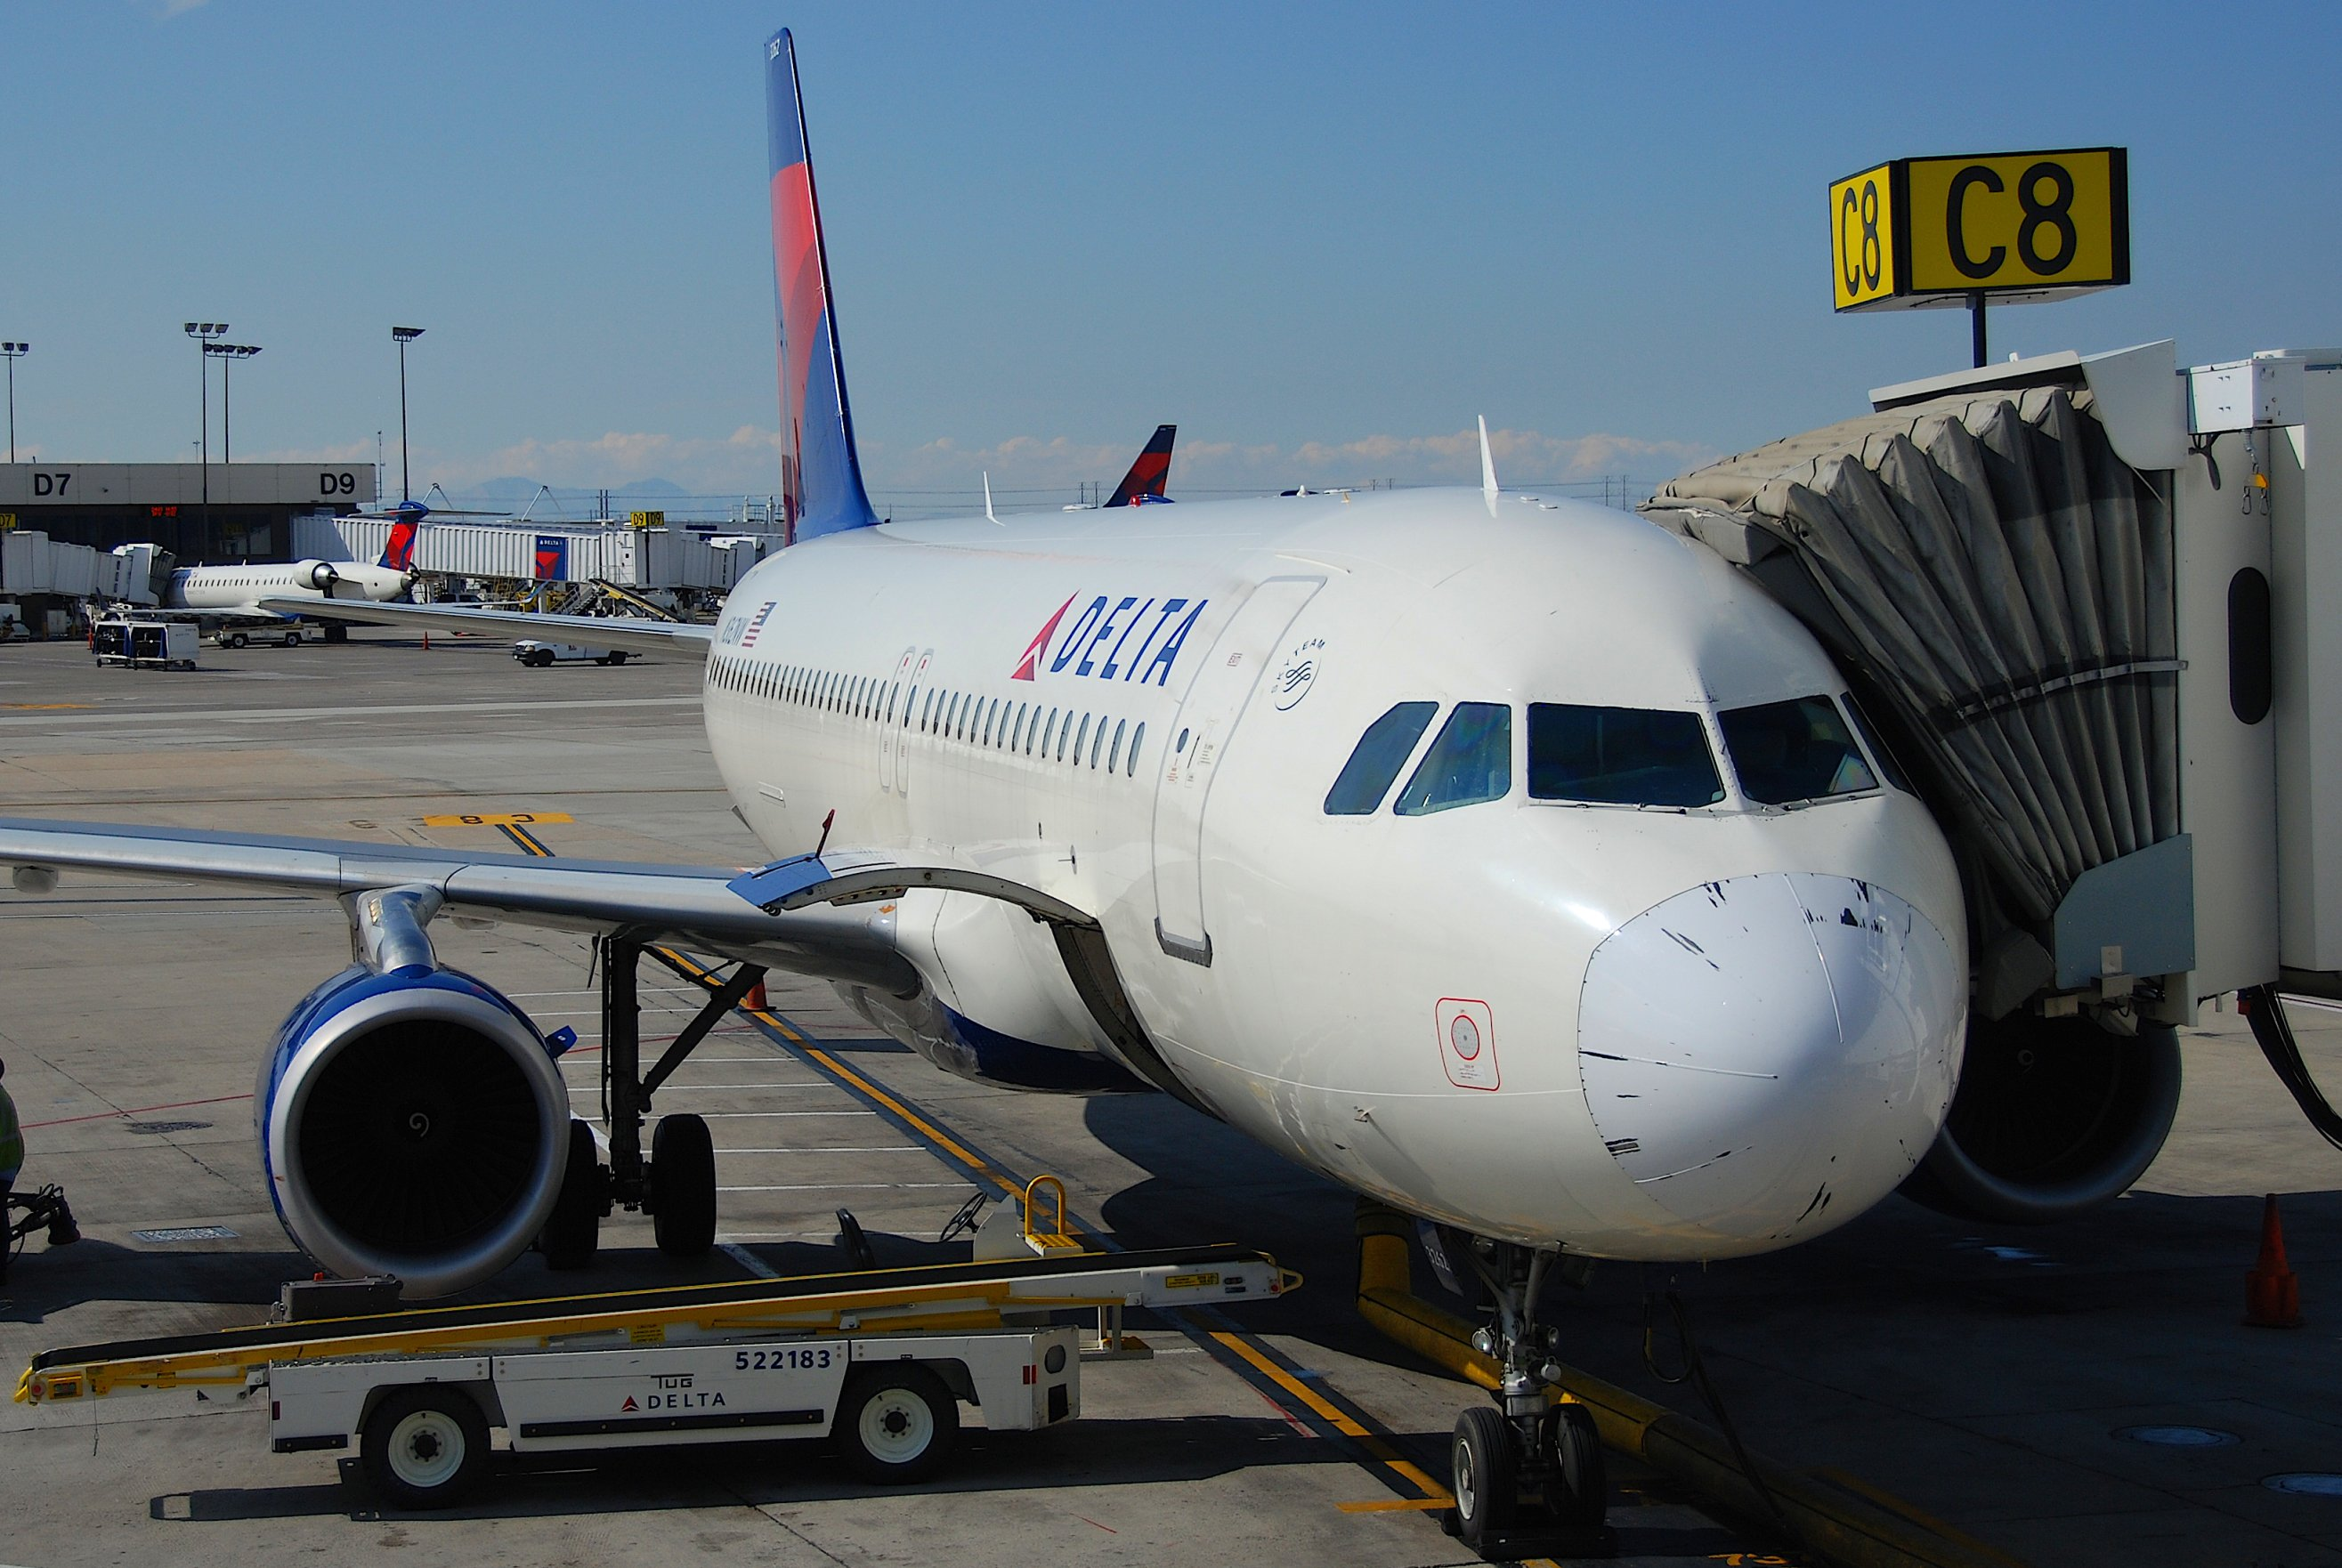 Does My Delta Skymiles Cover International Travel Insurance